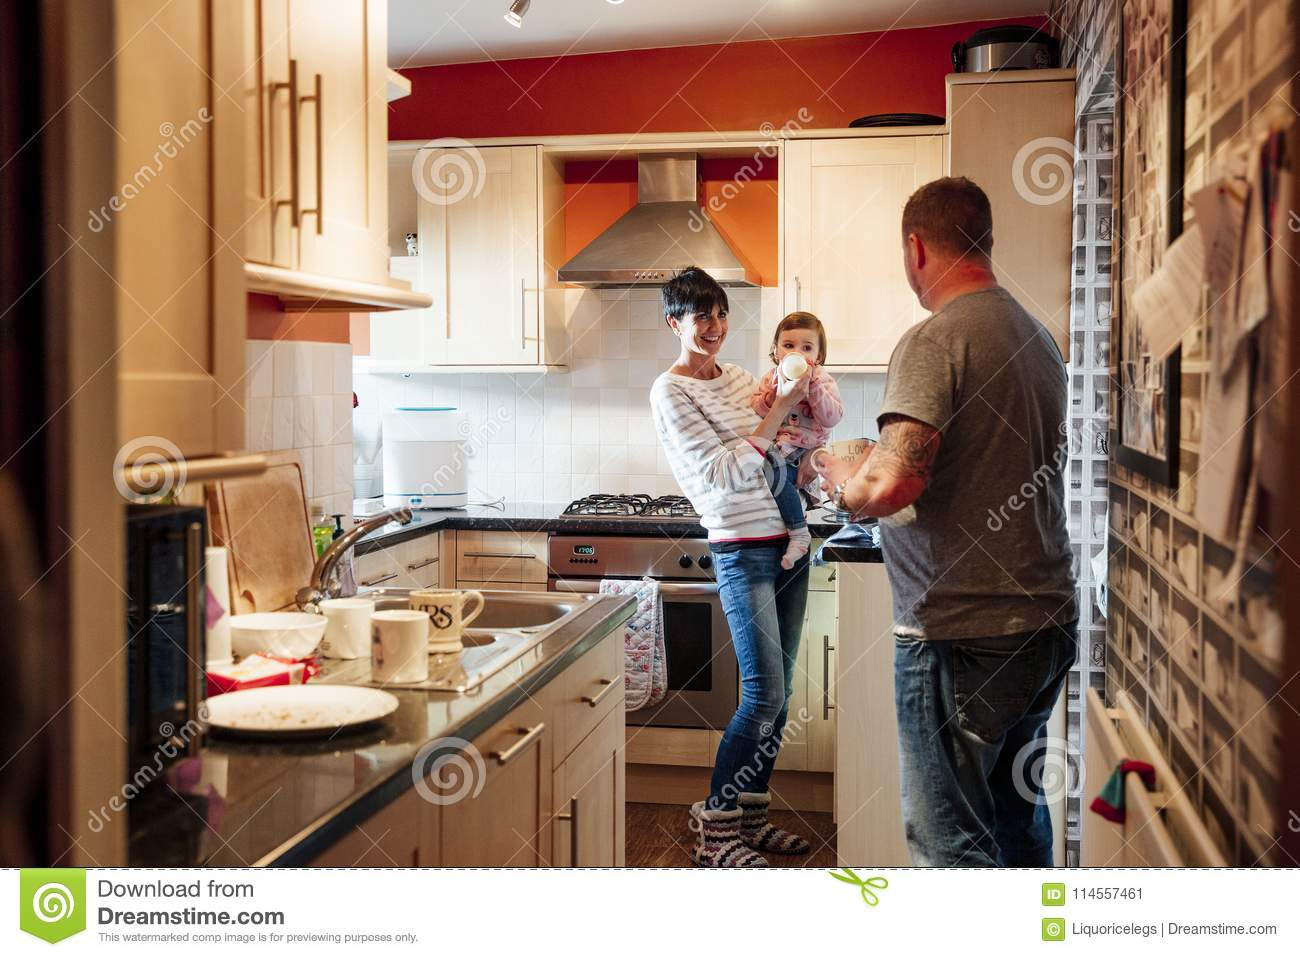 Family In The Kitchen With Baby Stock Image - Image of dairy